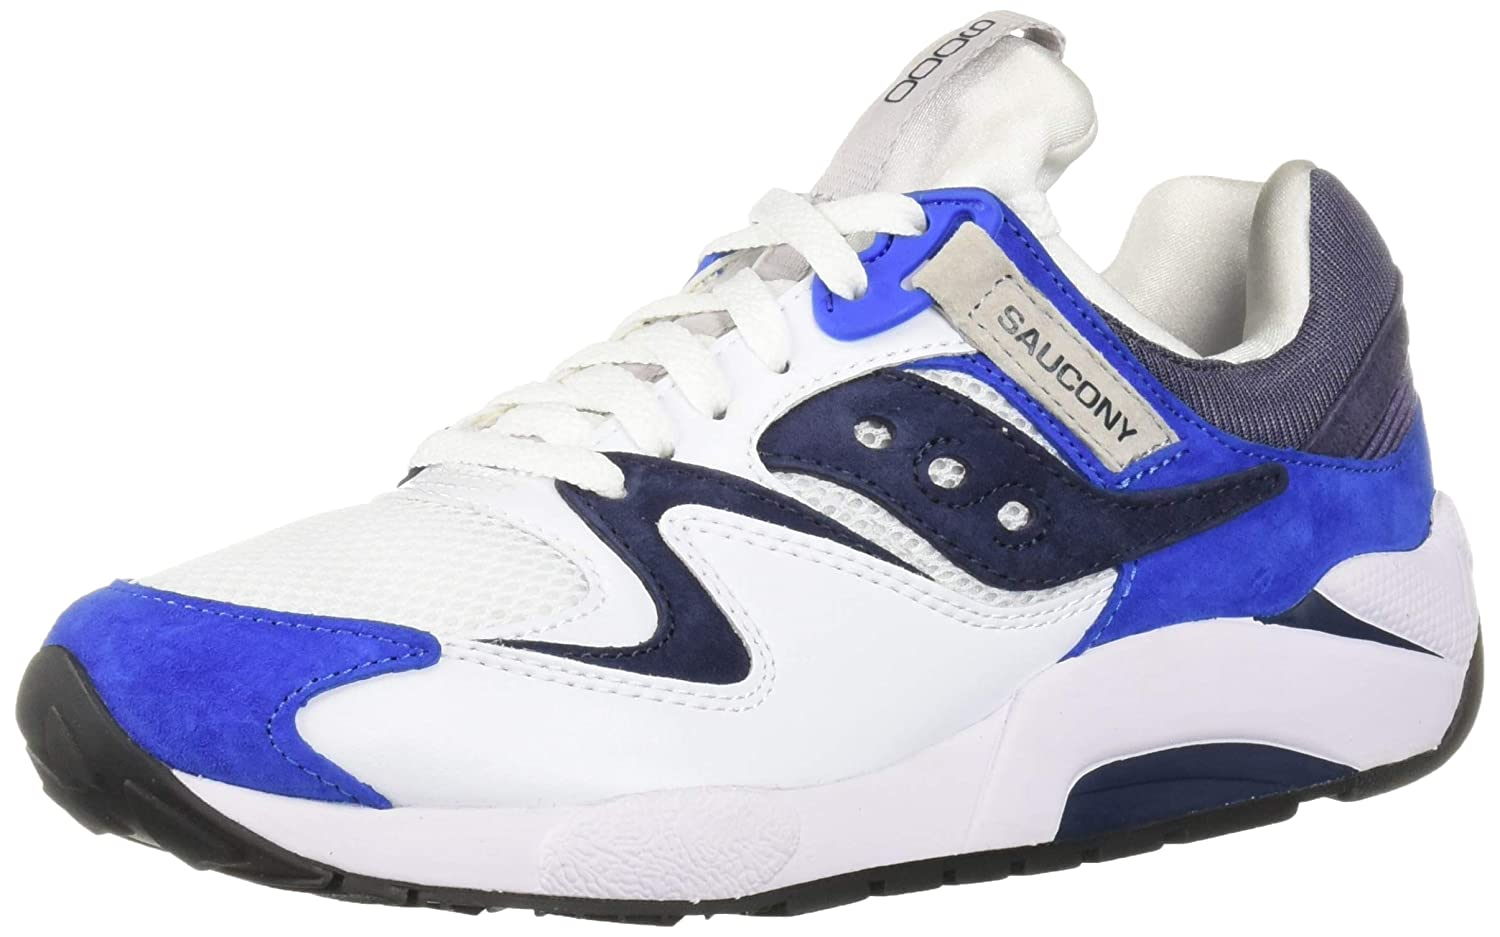 7500bec7 Saucony Originals Men's Grid 9000 Sneaker